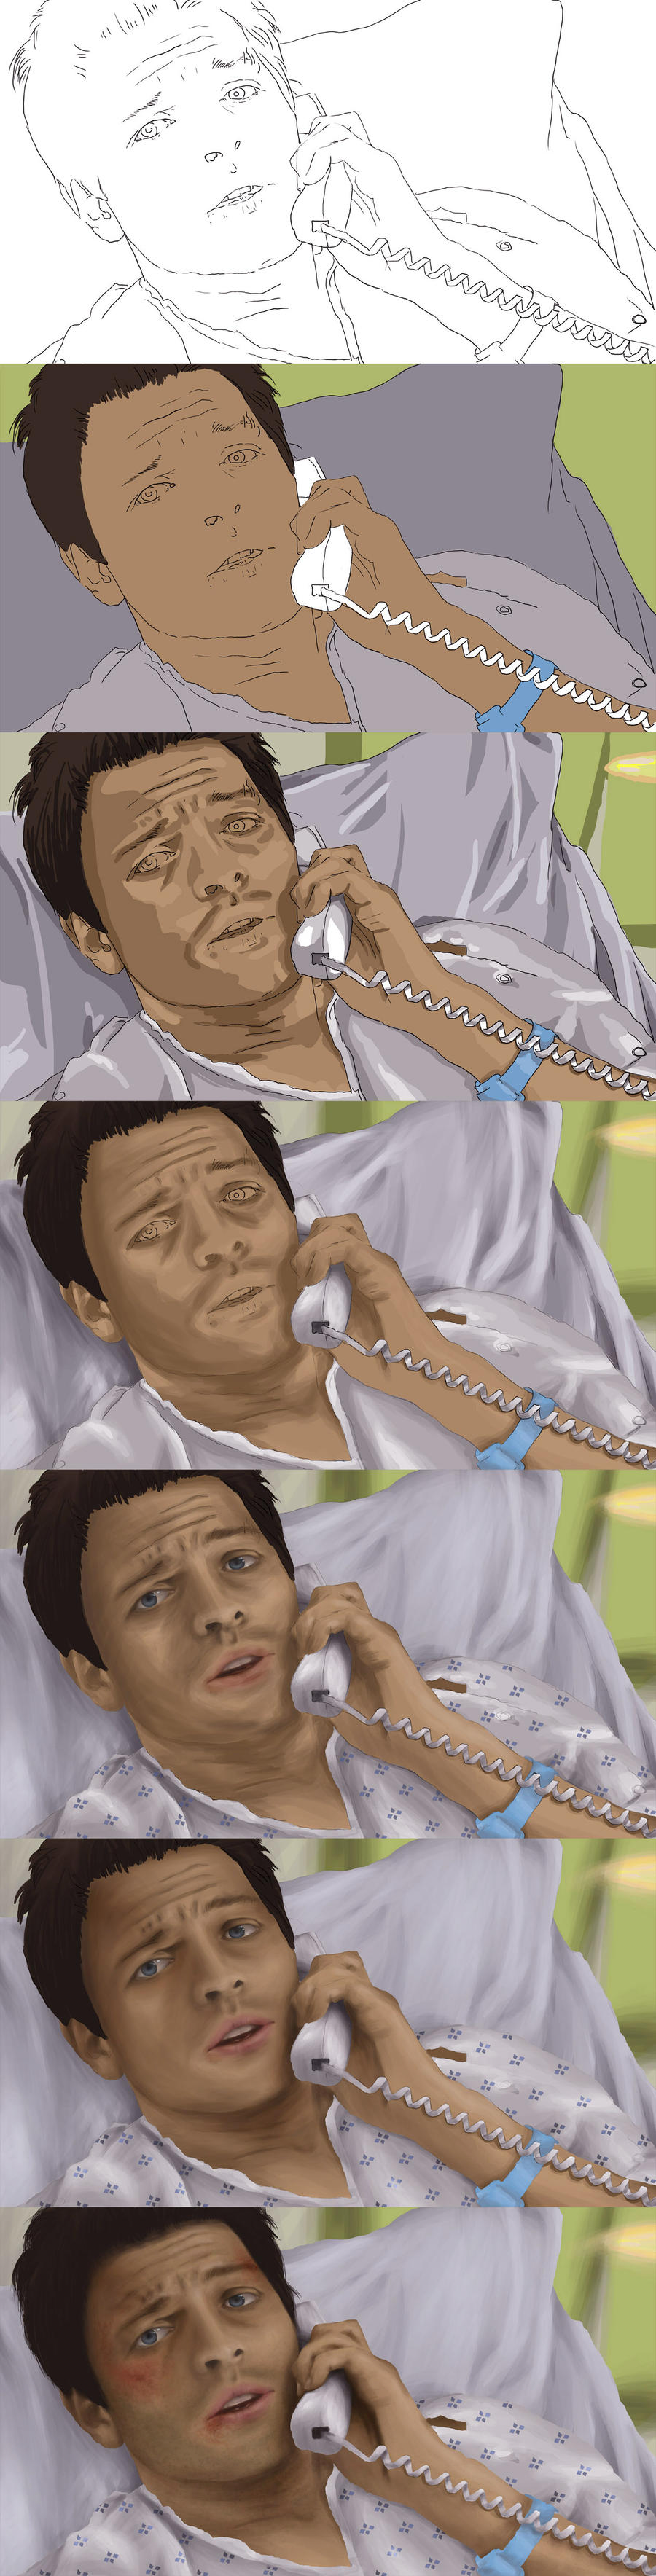 Castiel at Hospital WIP by Touya-shi